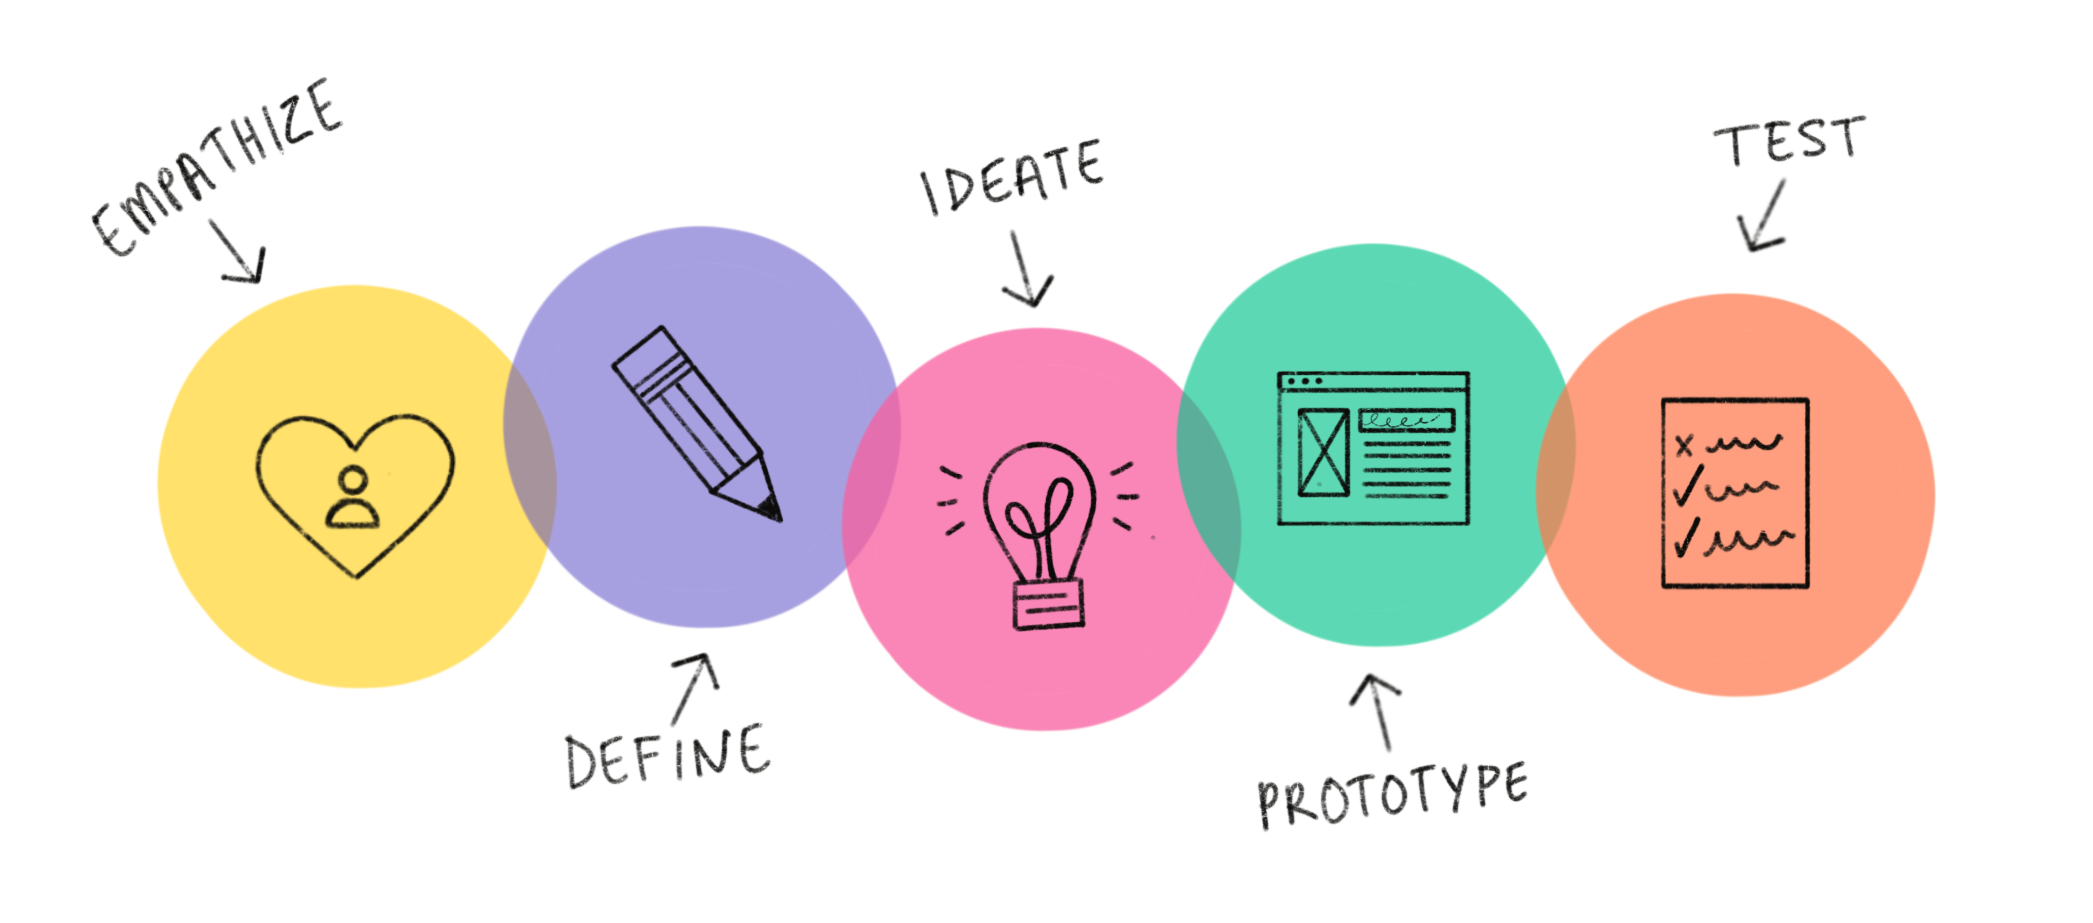 User Experience is … Design Thinking   by Iain Heath   UX Collective